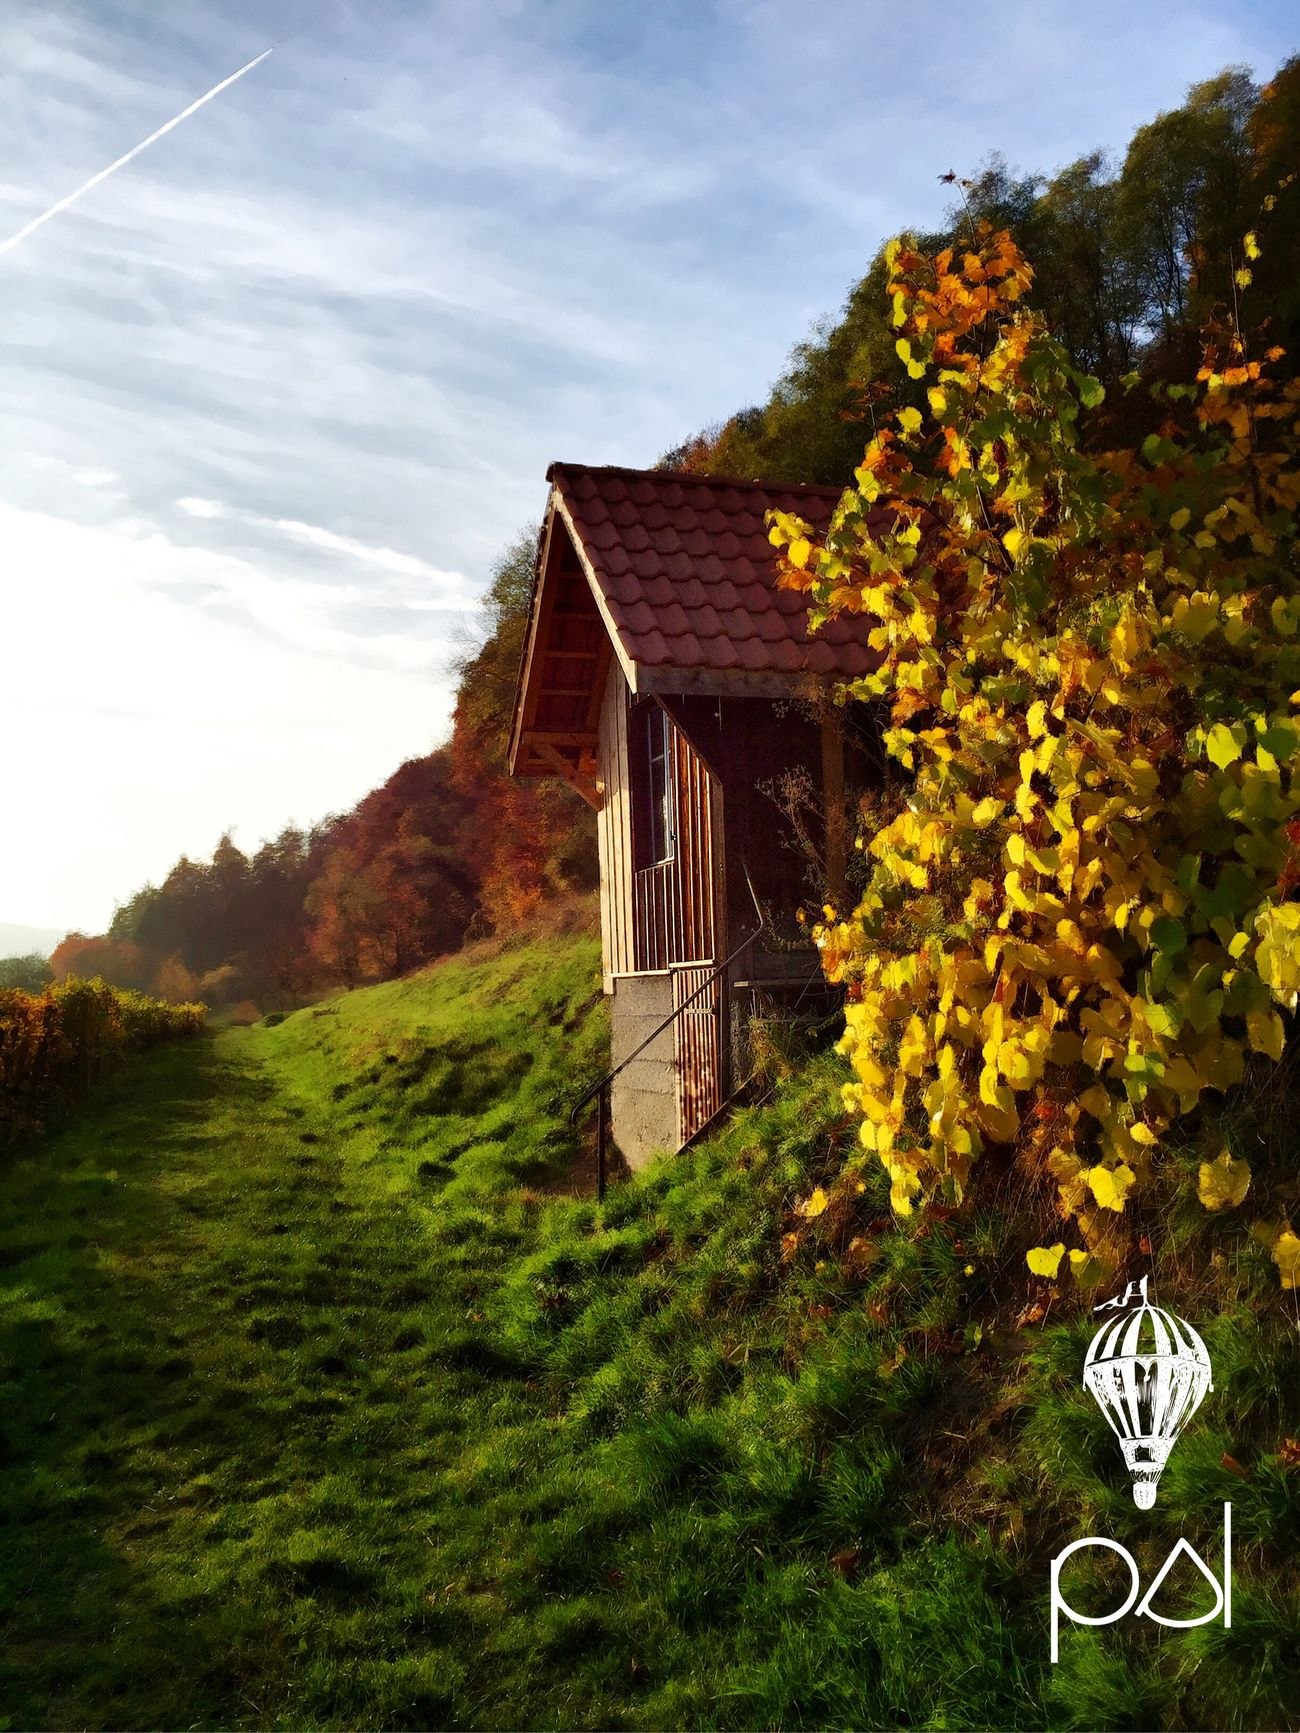 The golden hour. Taking Photos Sunset Landscape Nature EyeEm Best Shots Eyem Nature Lovers  Autumn Leaves Autumn Sunset_collection Forest